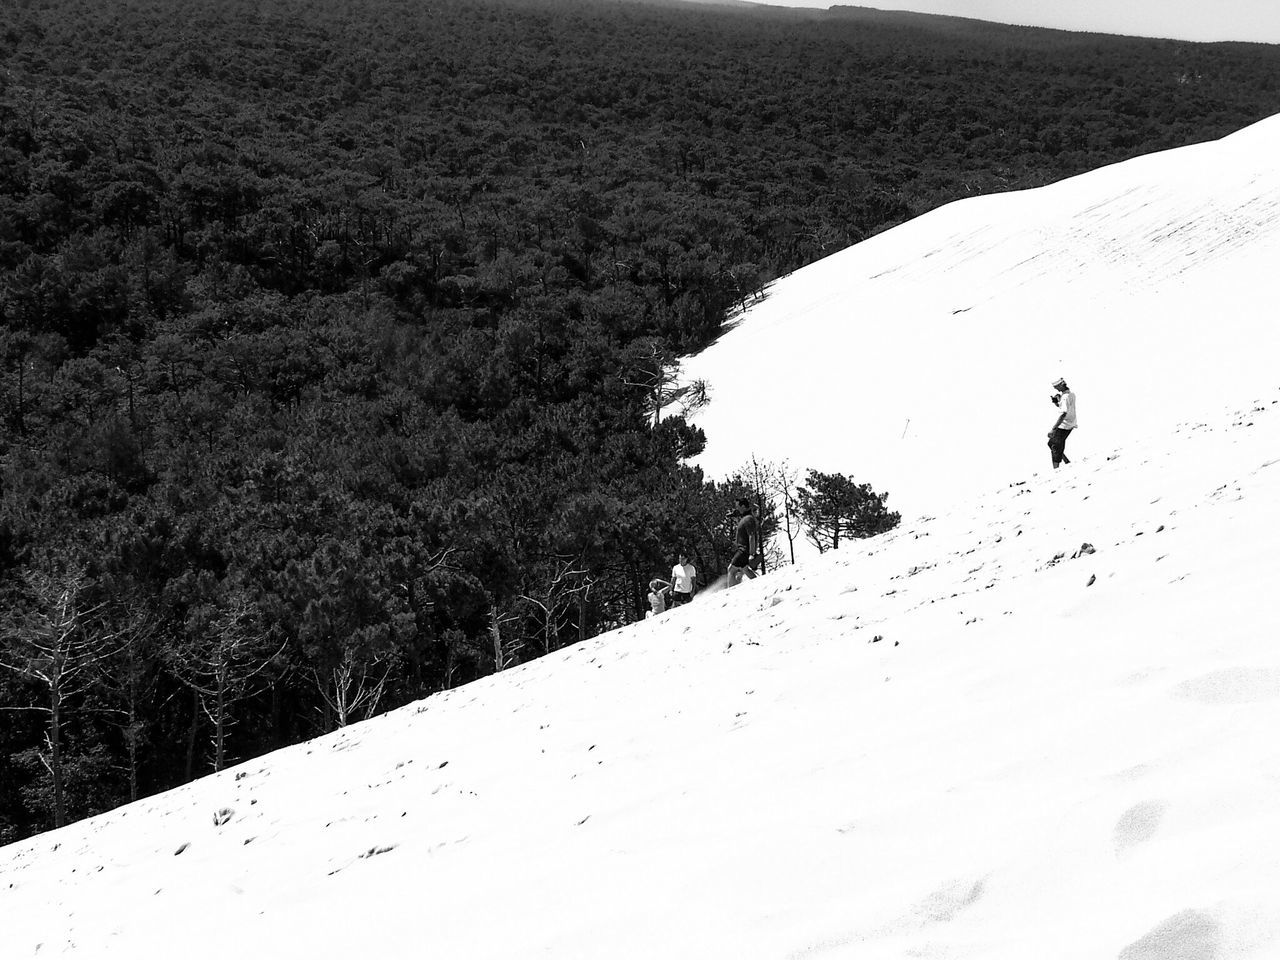 Real People Lifestyles Nature Leisure Activity One Person Outdoors High Angle View Day Beauty In Nature Landscape Full Length Dune Sand Summer Dune Du Pyla Tranquil Scene Travel Destinations France Bnw Bnw_collection EyeEm Bnw Bnw_friday_eyeemchallenge Miles Away